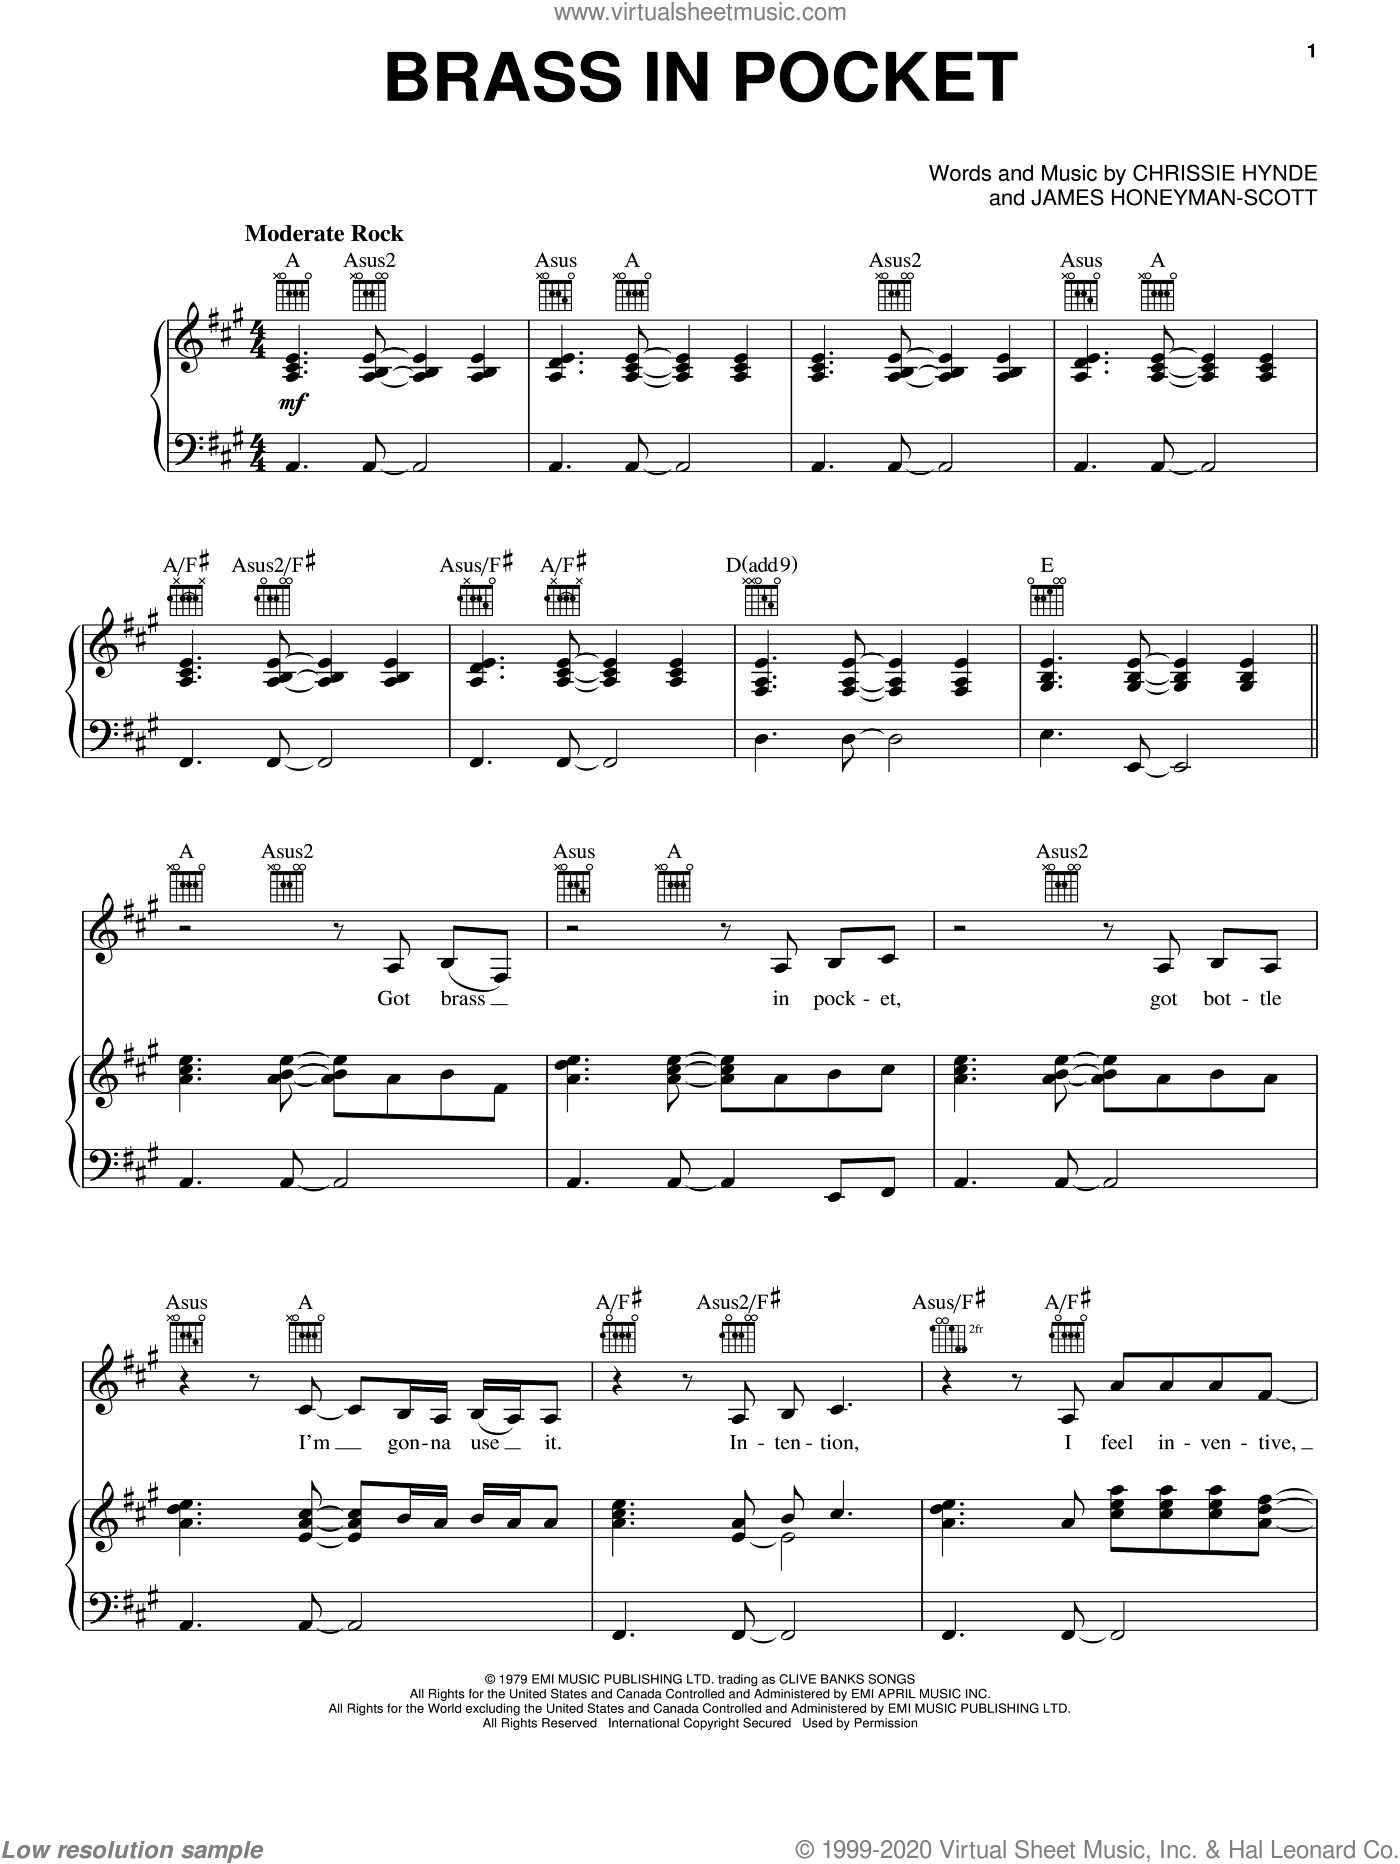 Brass In Pocket sheet music for voice, piano or guitar by The Pretenders and Chrissie Hynde, intermediate. Score Image Preview.